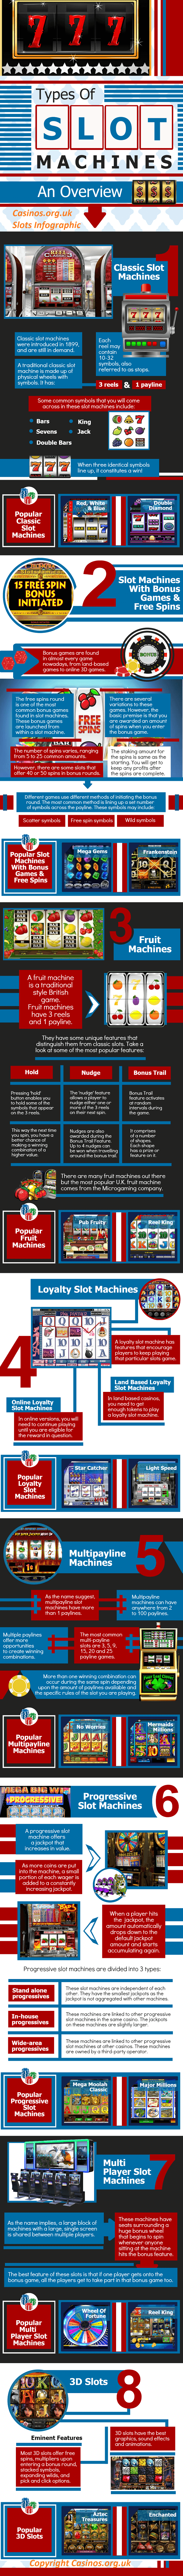 Infographic Different Types of Slots